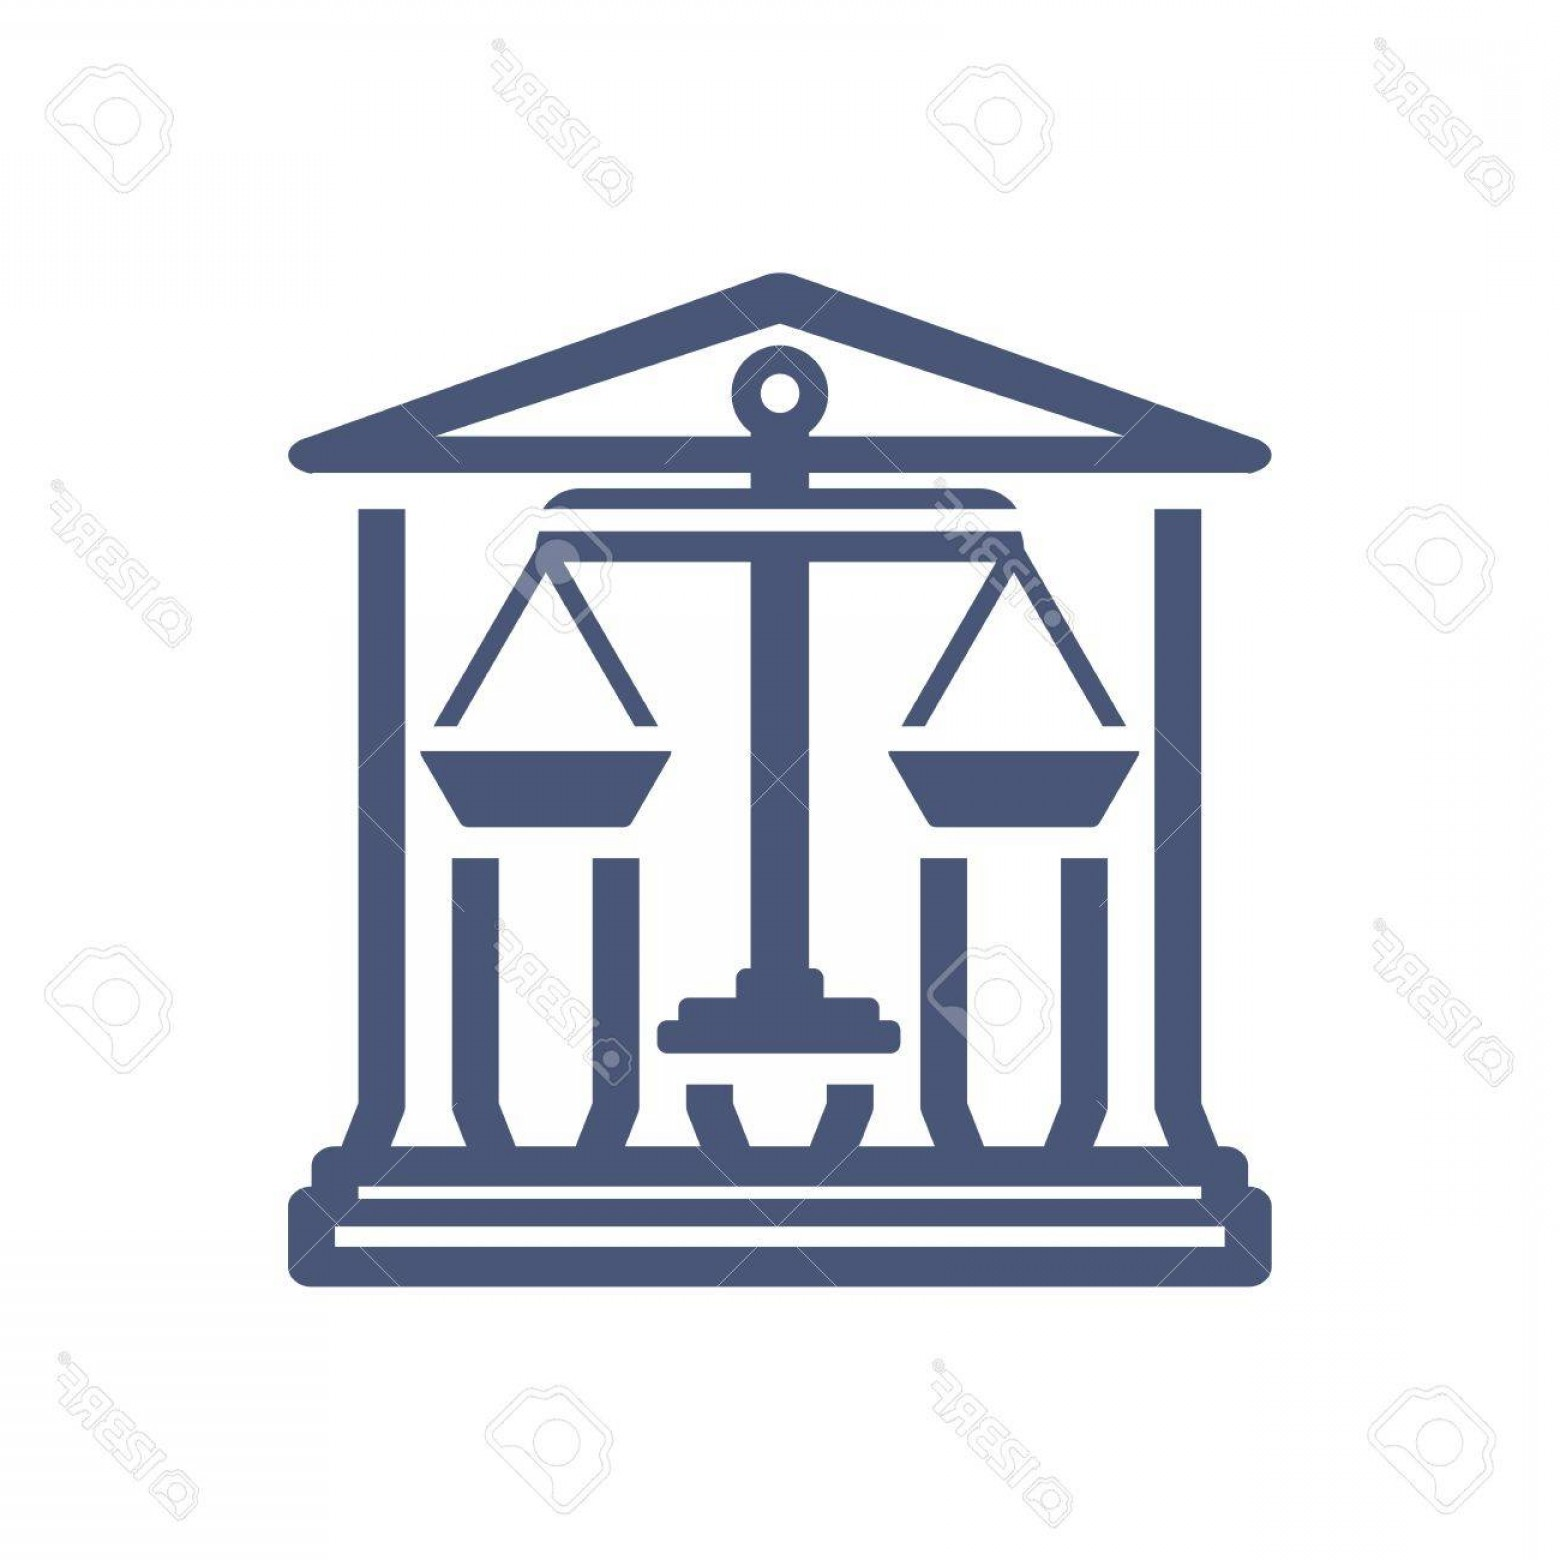 Balance Symbol Vector: Photostock Vector Law Firm Logo Icon With Vintage Scale In Balance Symbol Vector